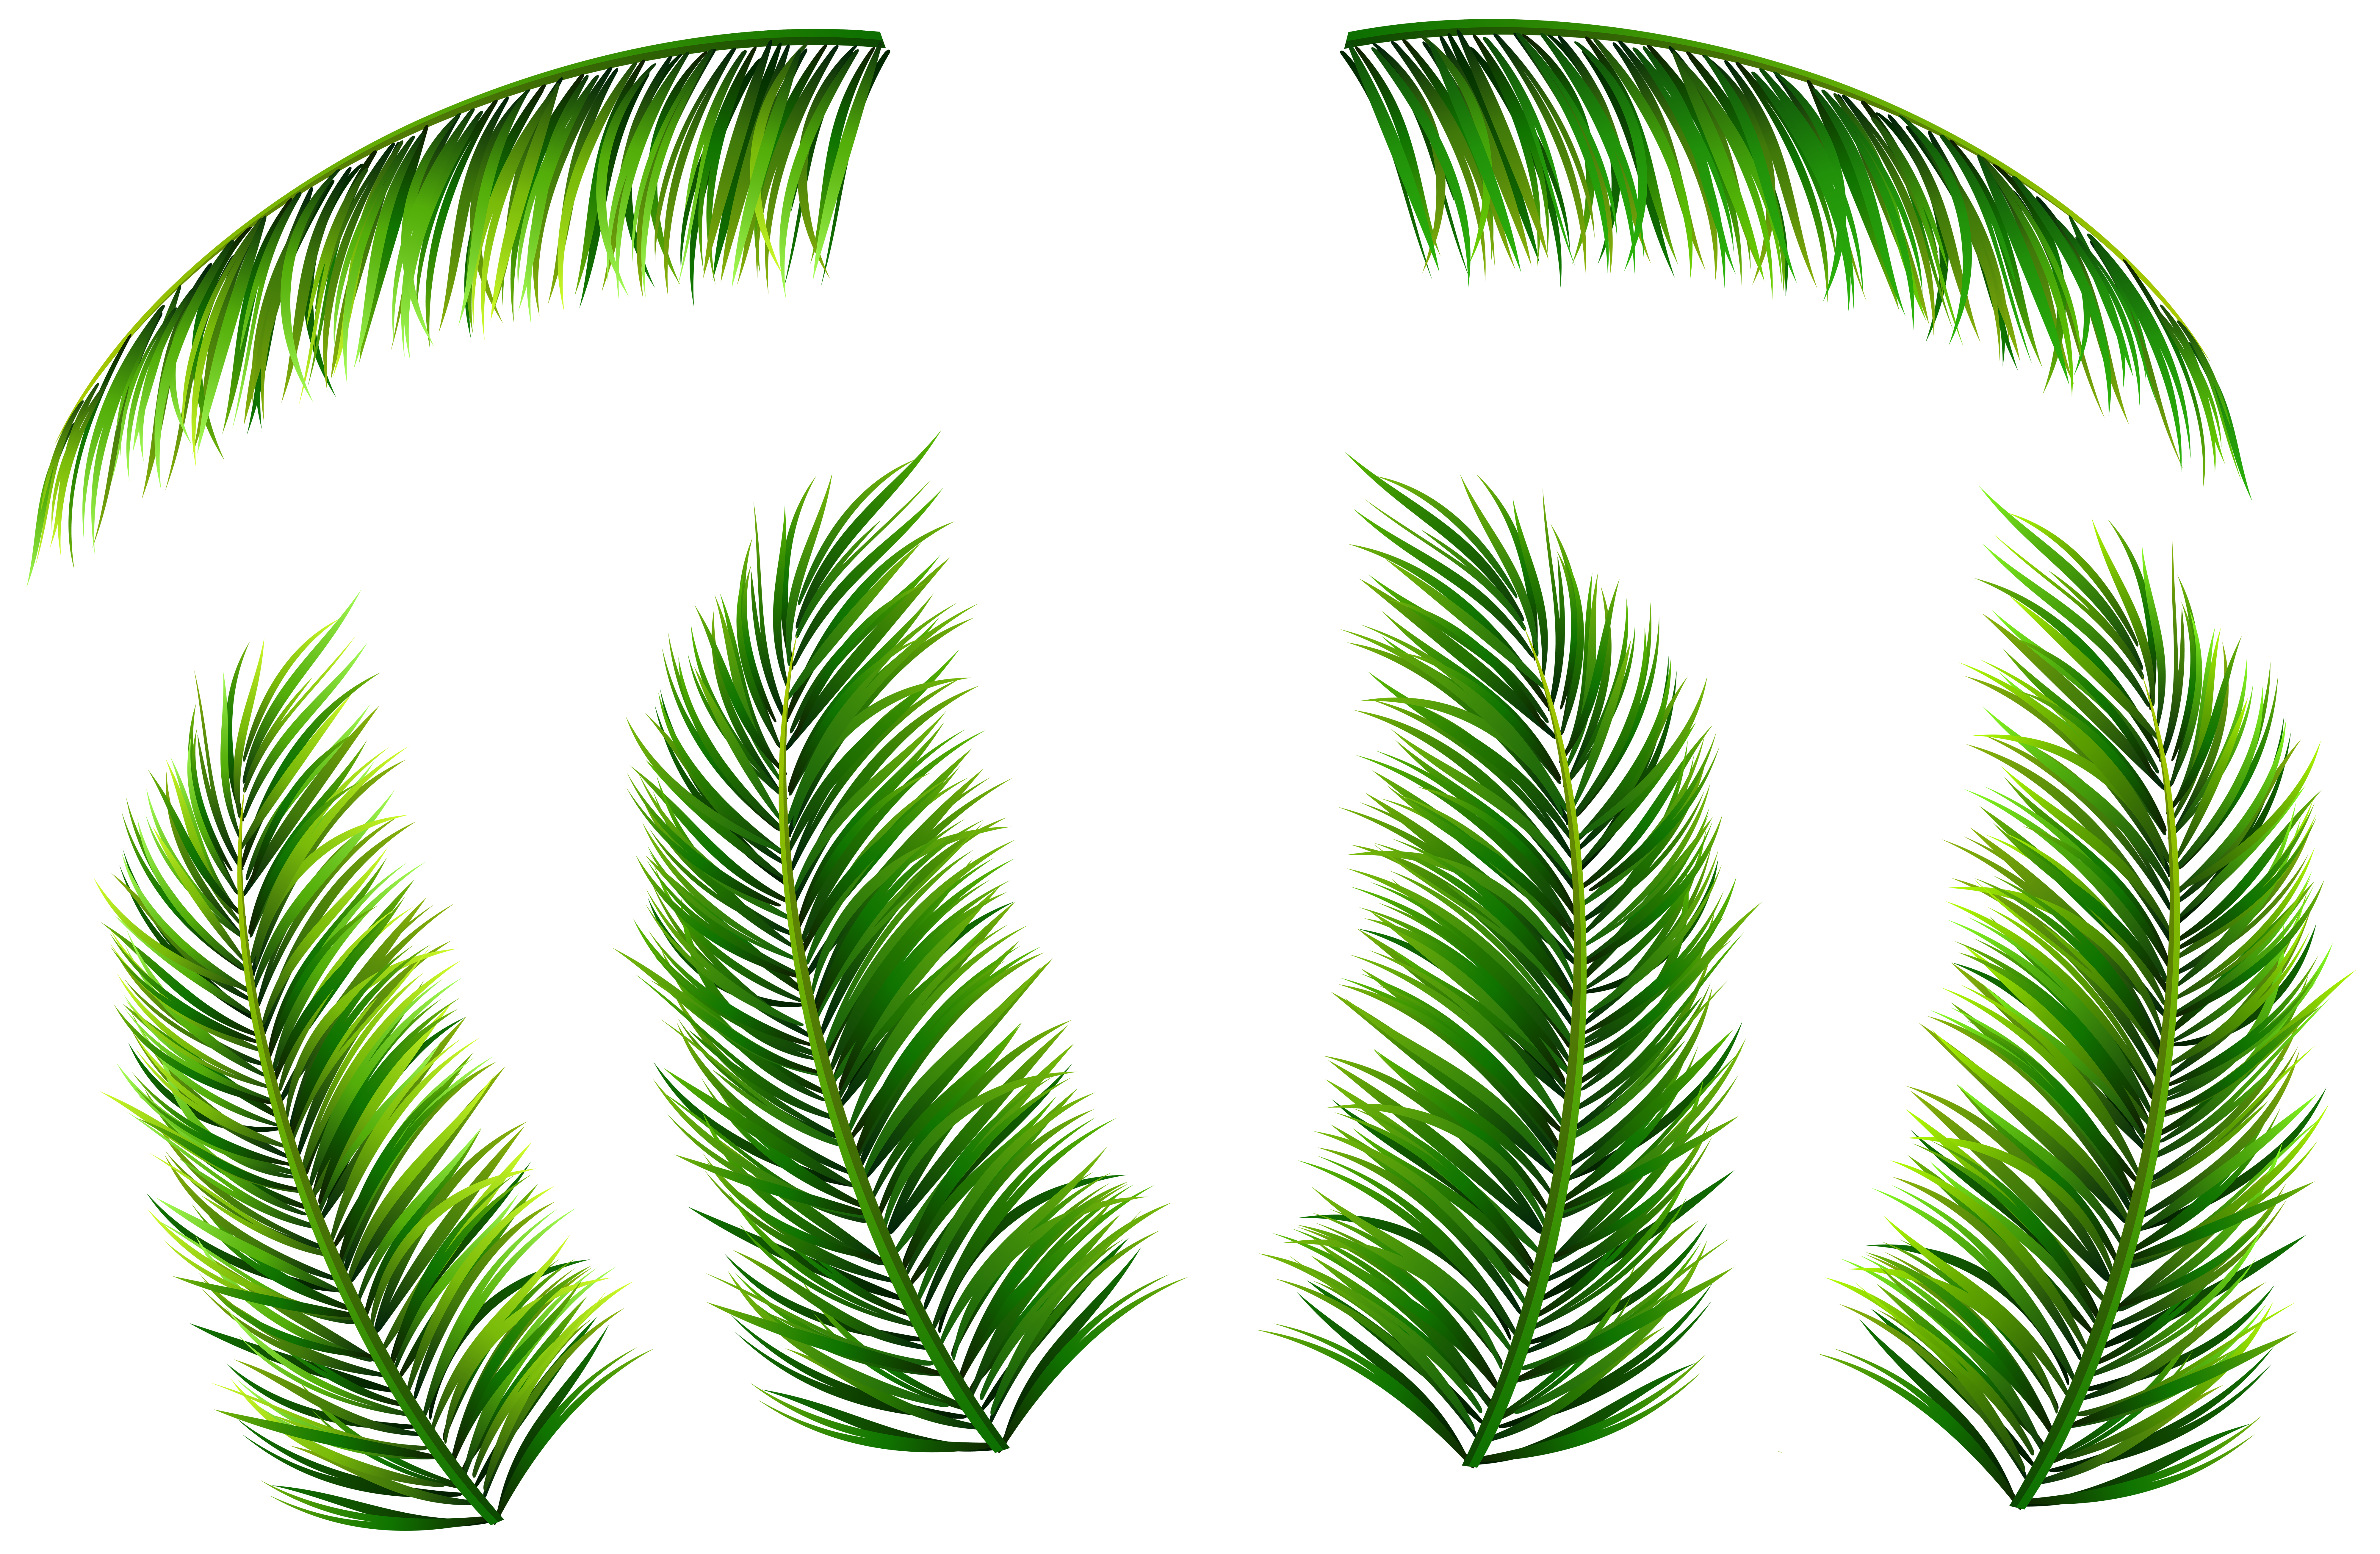 Palm fronds png. Leaves clip art image